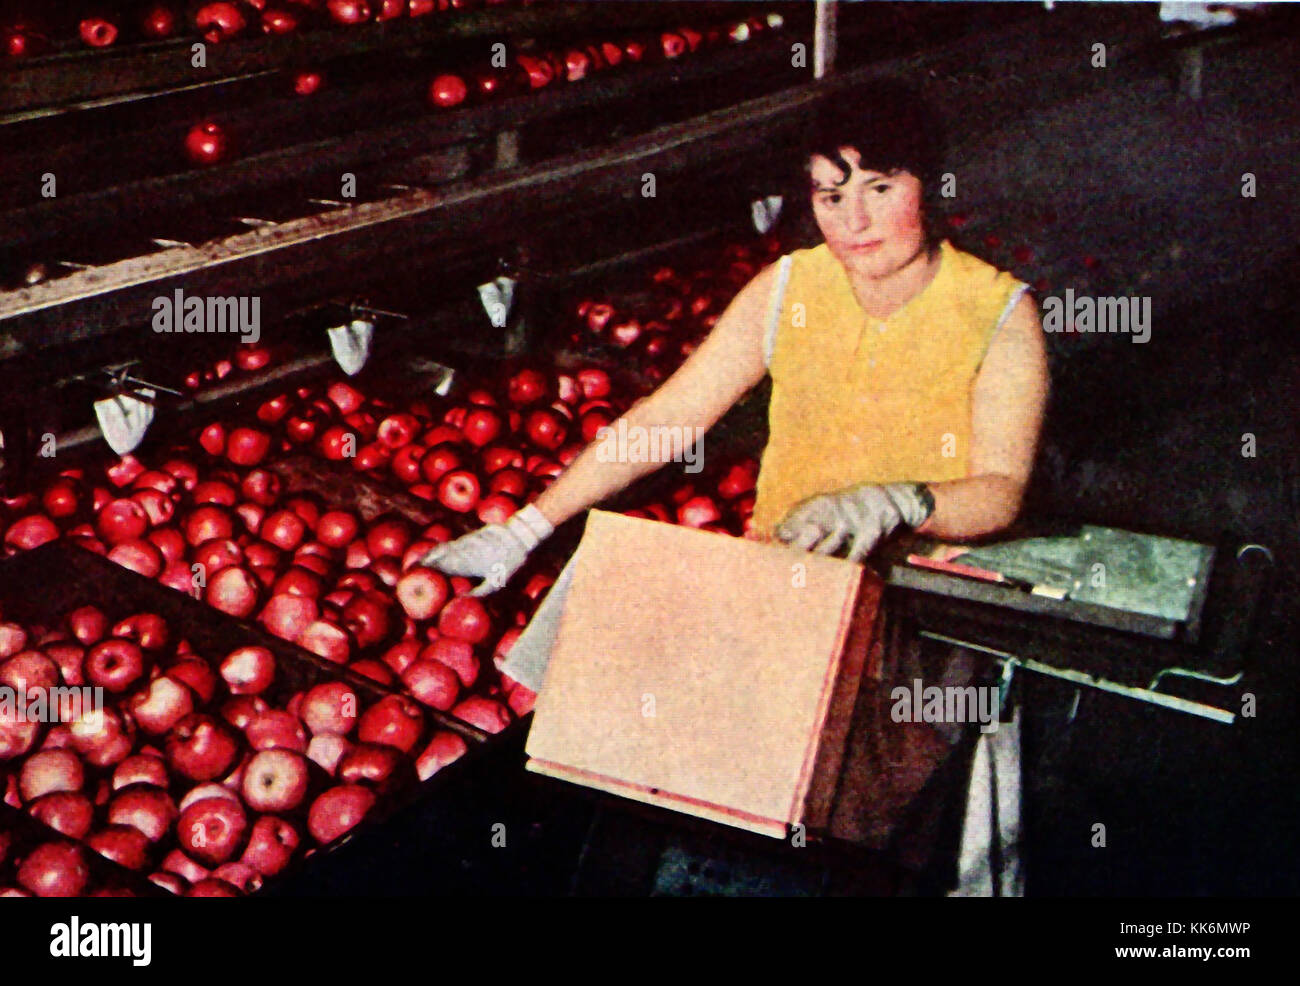 1933 - WENATCHEE THE APPLE CAPITAL OF THE WORLD. A vintage color photograph - Sorting apples at Wenatchee USA   Stock Photo